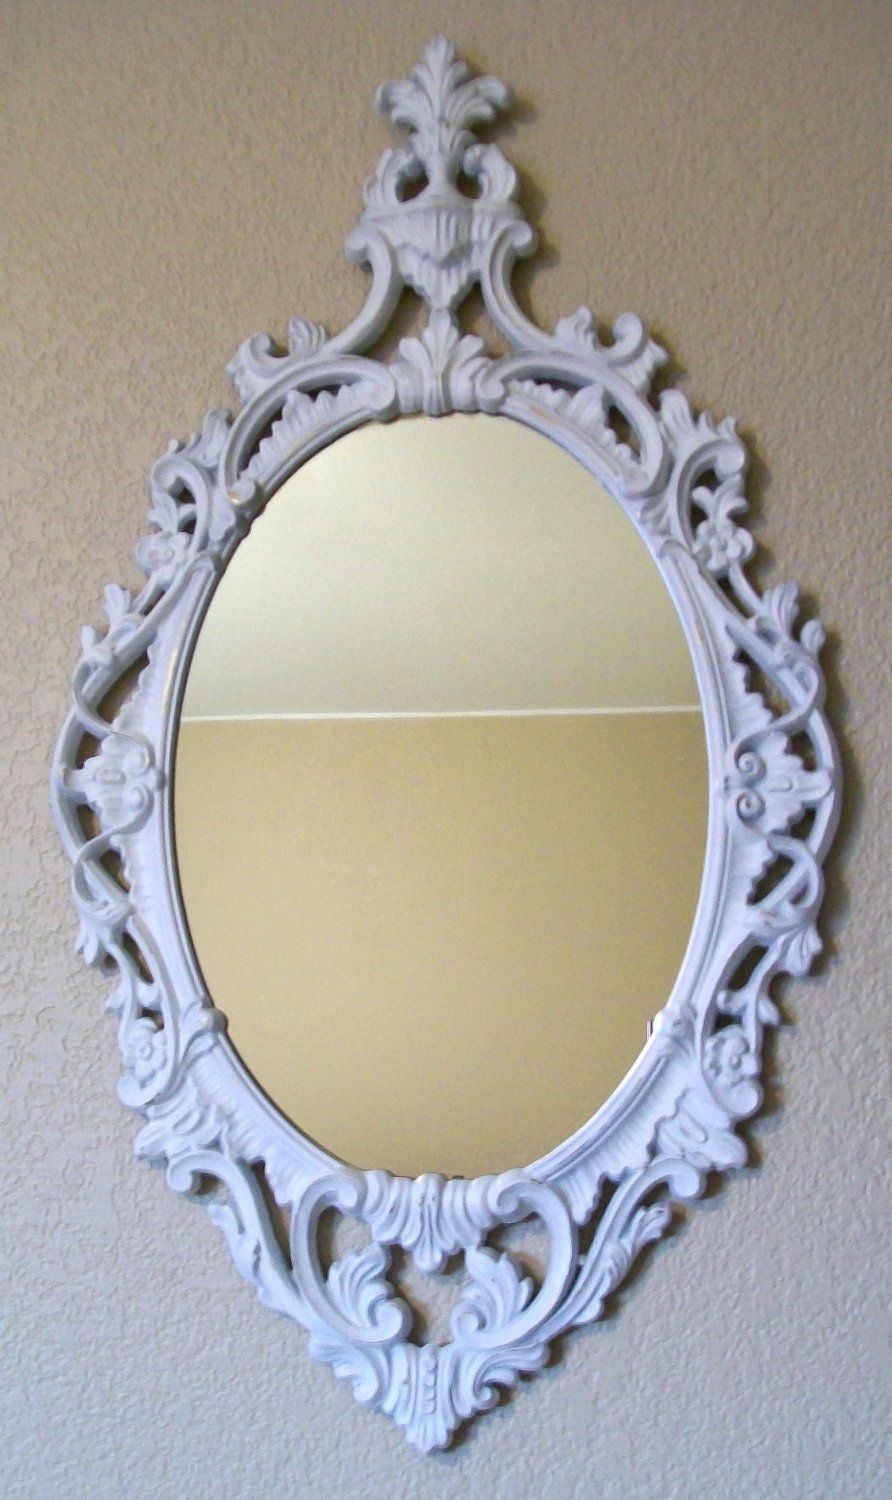 Mirror for bathroom or chalkboard for kitchen! By Shabby McFabby